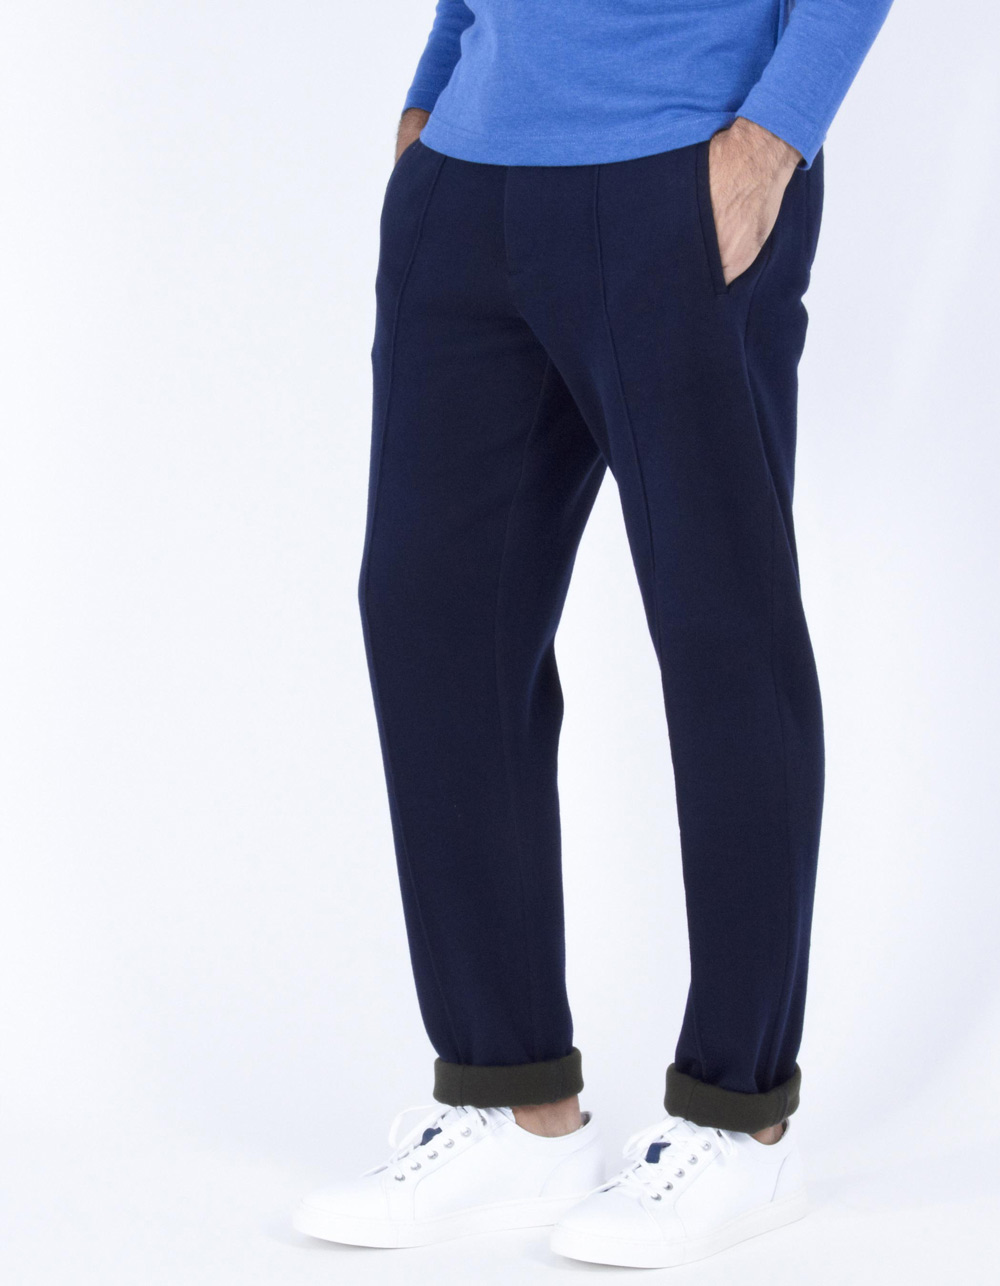 Navy blue sport trousers with darts